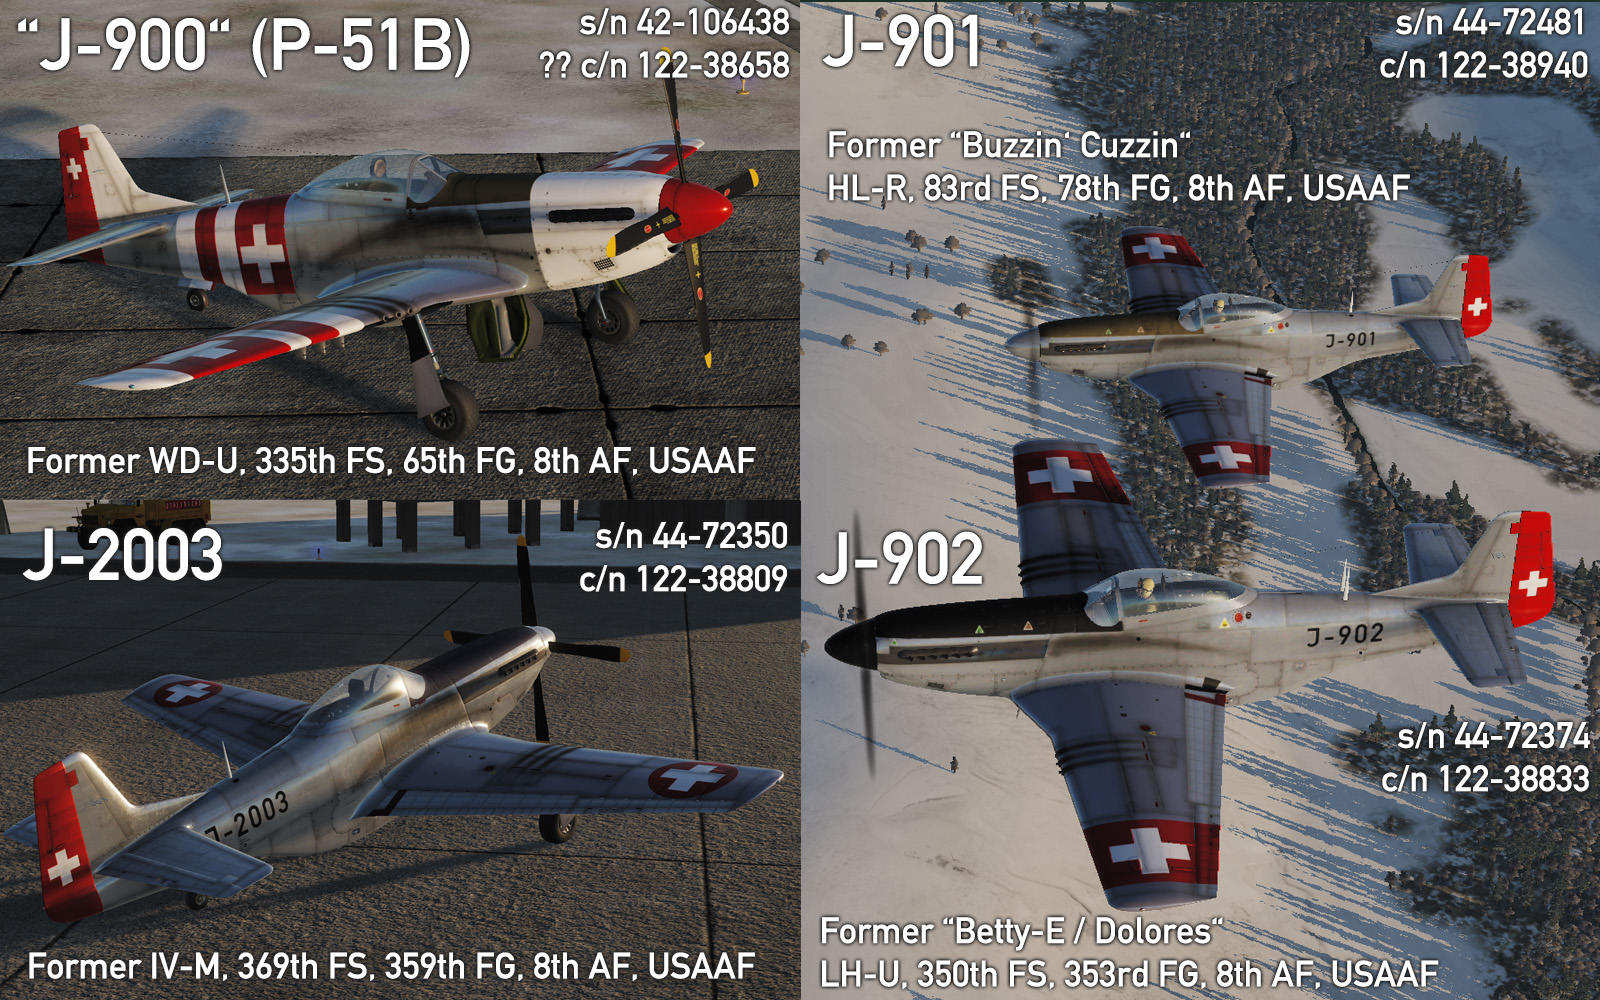 P-51D / TF-51D Swiss Air Force Pack 4.0 - Early Schemes